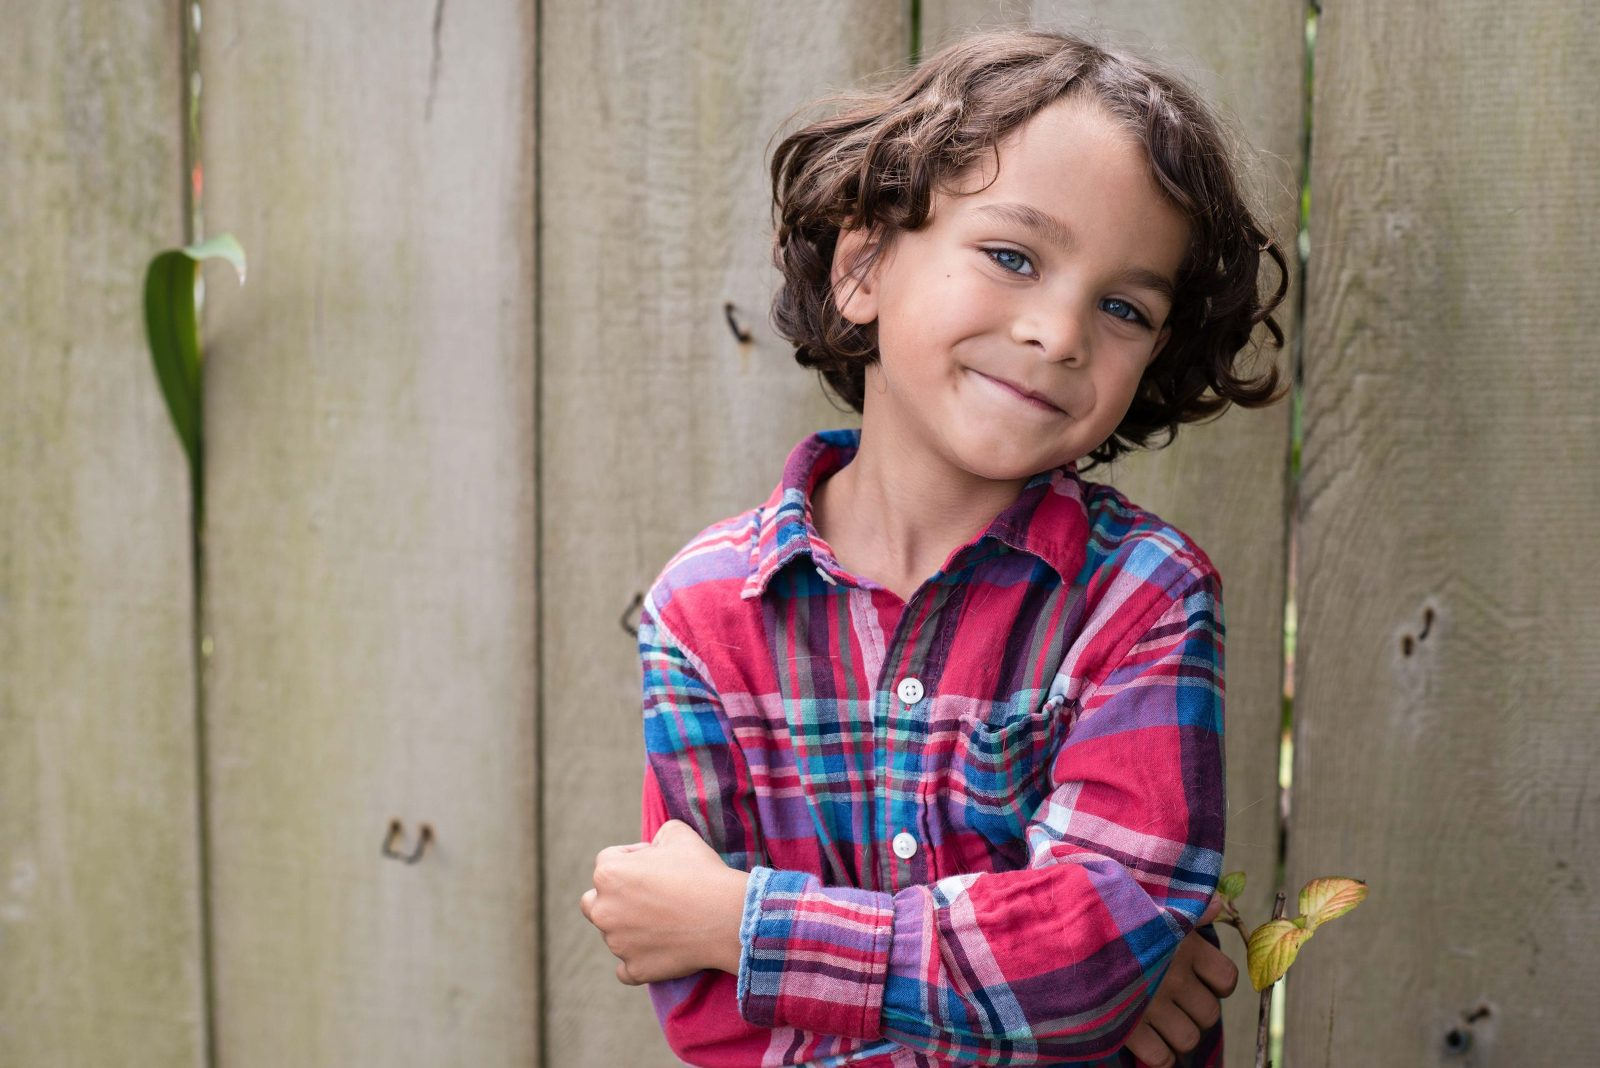 proud young child with blue eyes and brown curly hair wearing a plaid shirt, rustic fence background